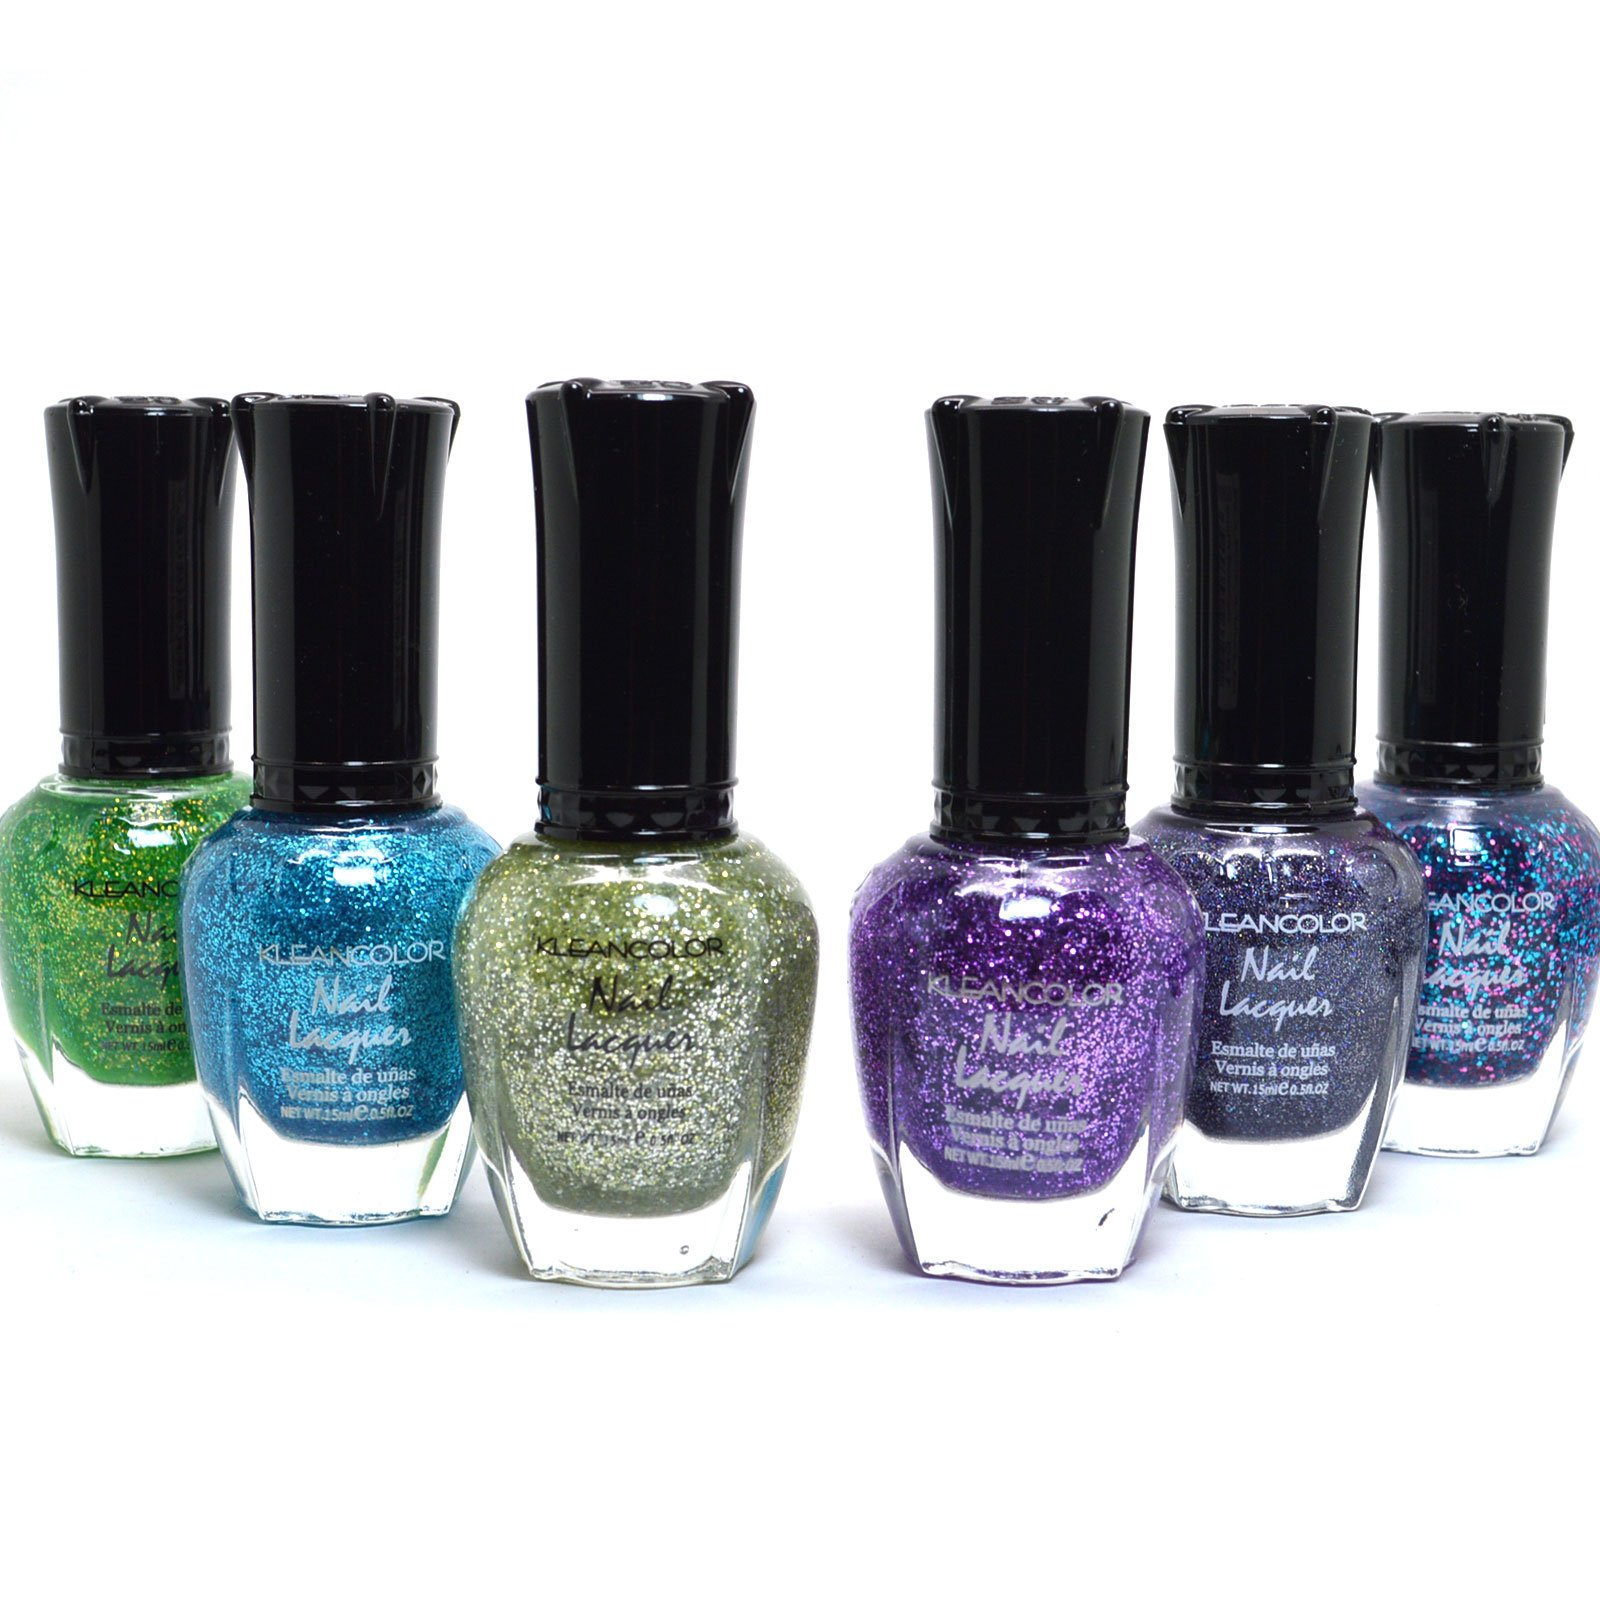 Amazon.com : Kleancolor Nail Lacquer Collection - Awesome